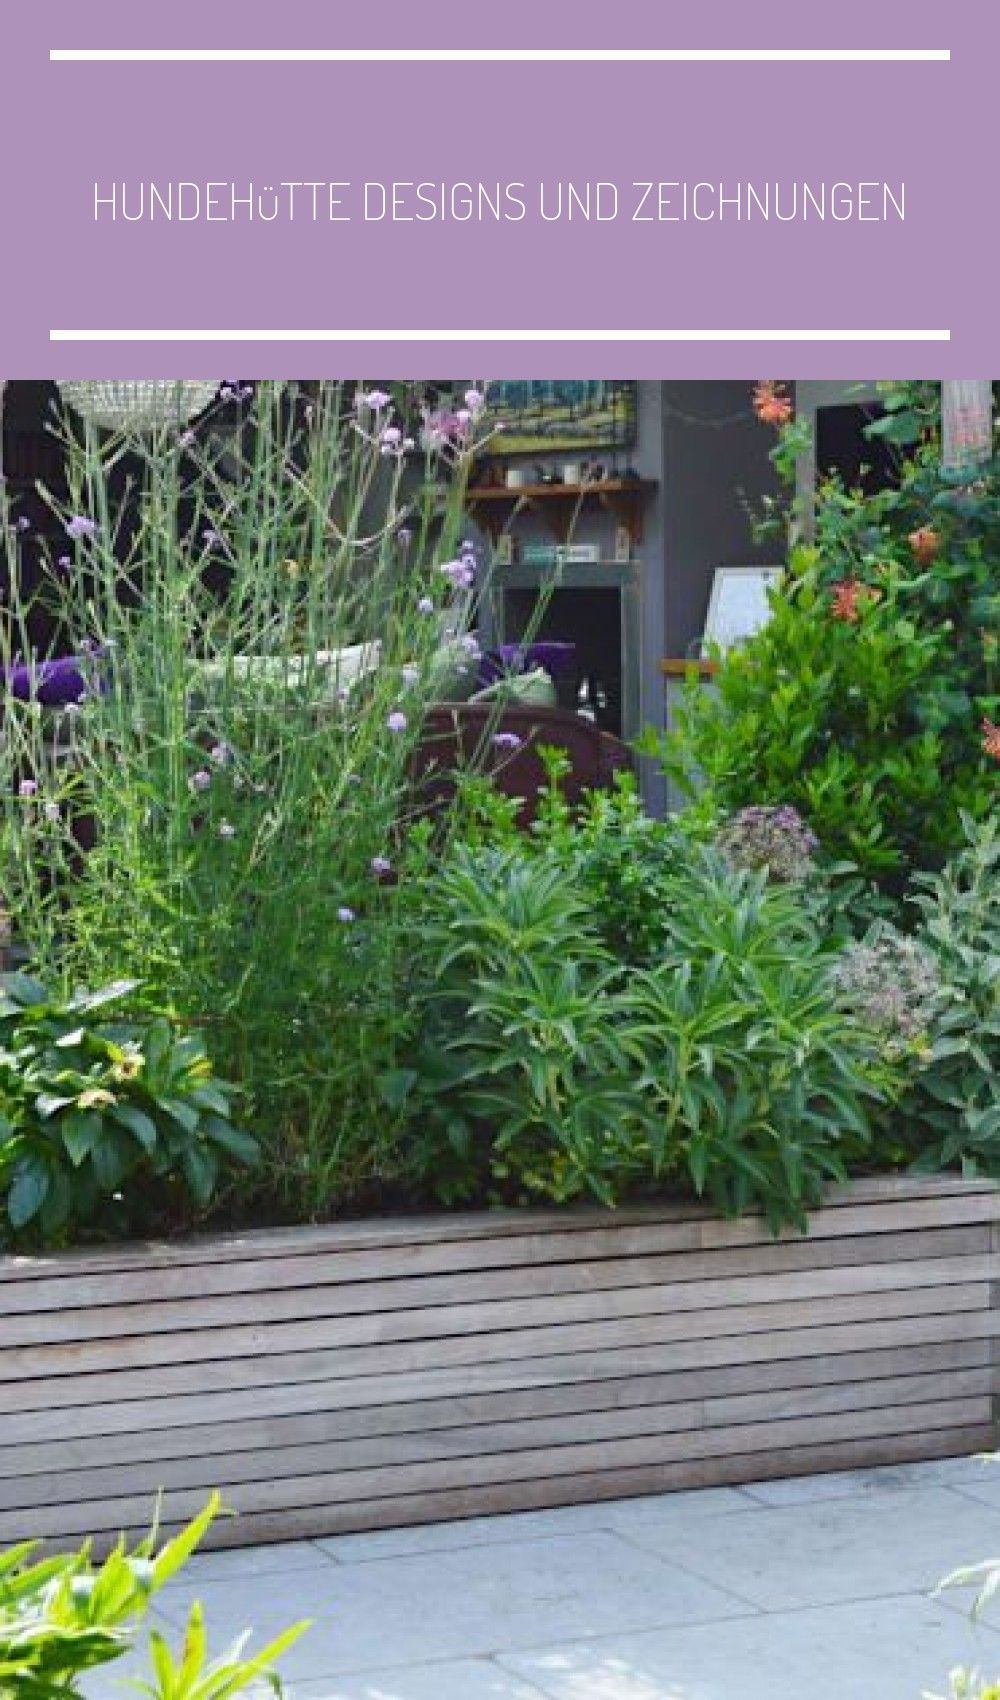 New Photos Long Raised Beds As A Boundary And Privacy Screen In Front Of The Ter In 2020 Small Space Gardening Contemporary Garden Raised Planter